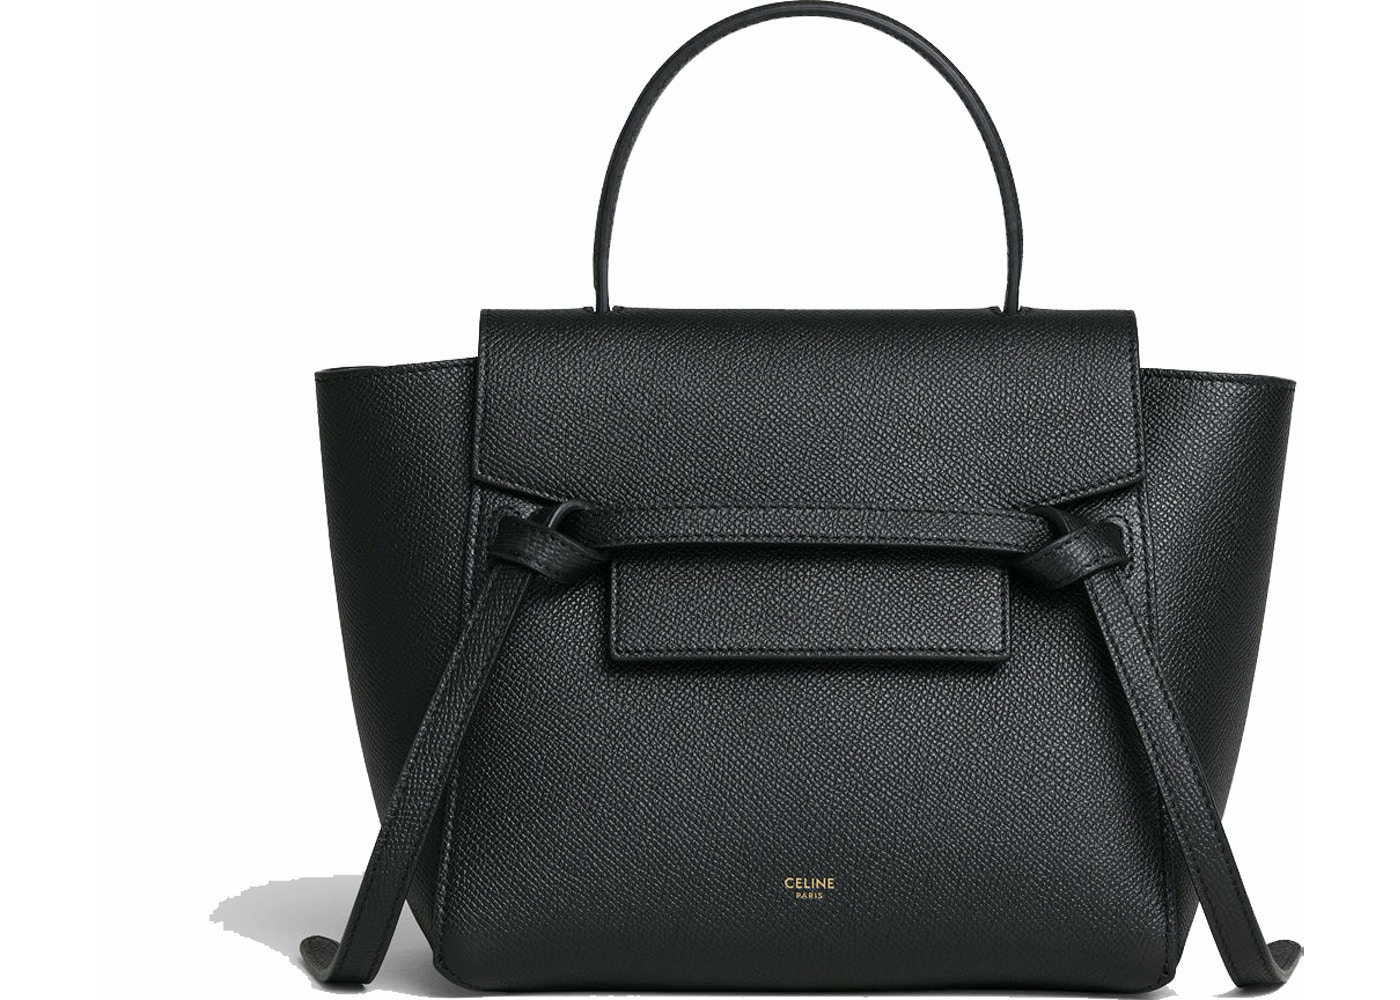 3fa8b71a3417 Celine Belt Bag Nano Grained Calfskin Black. Nano Grained Calfskin Black